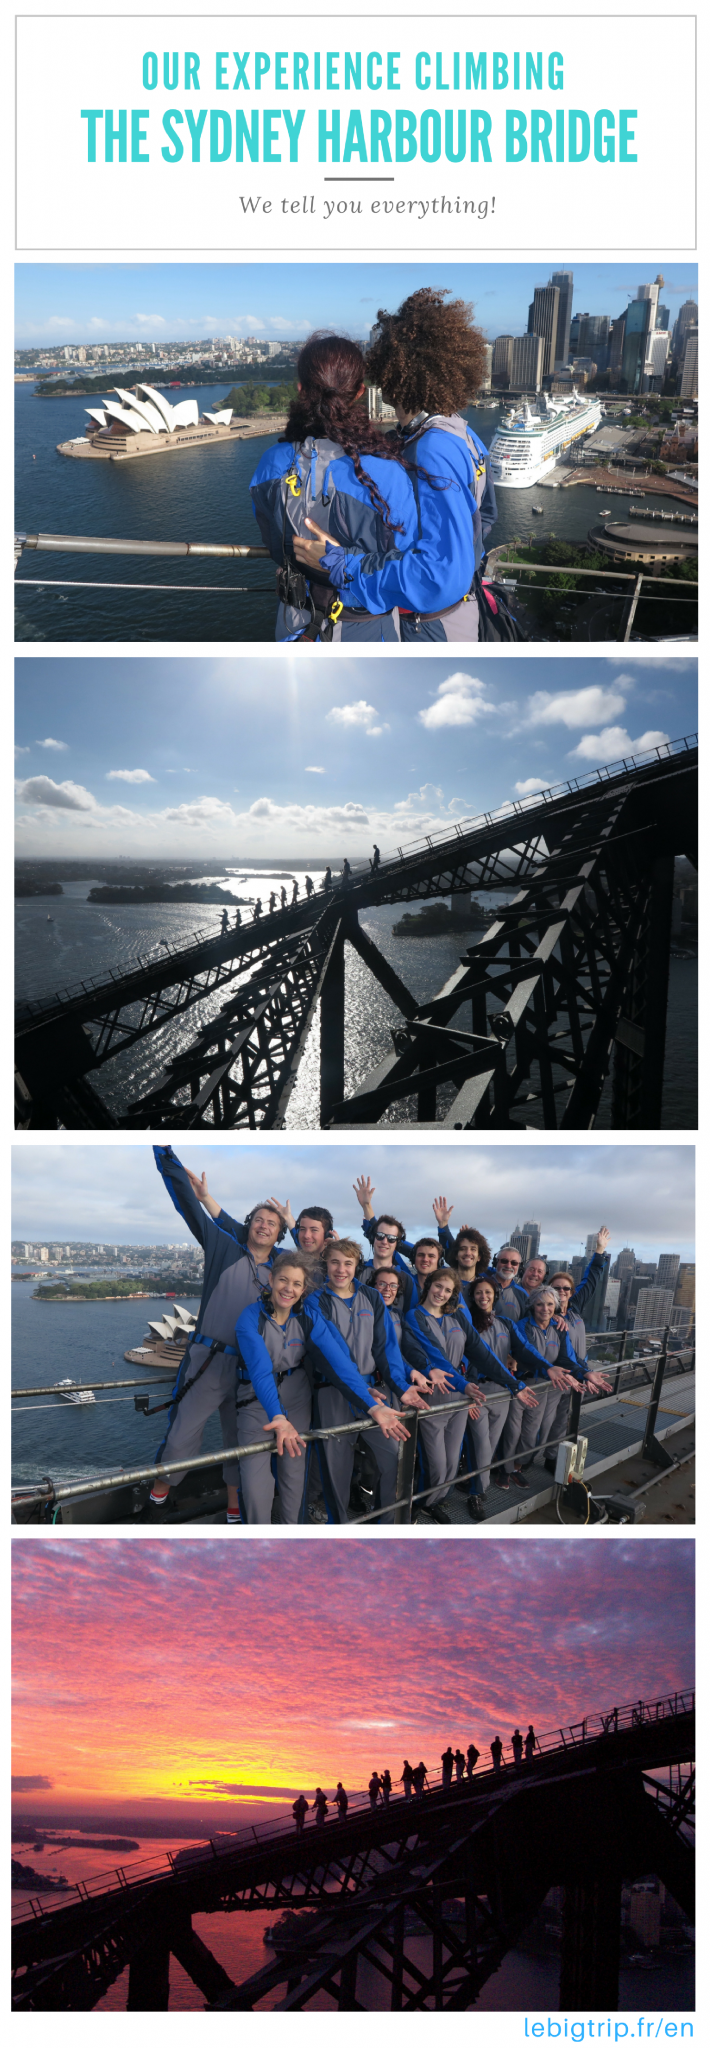 The Sydney Harbour Bridge climb